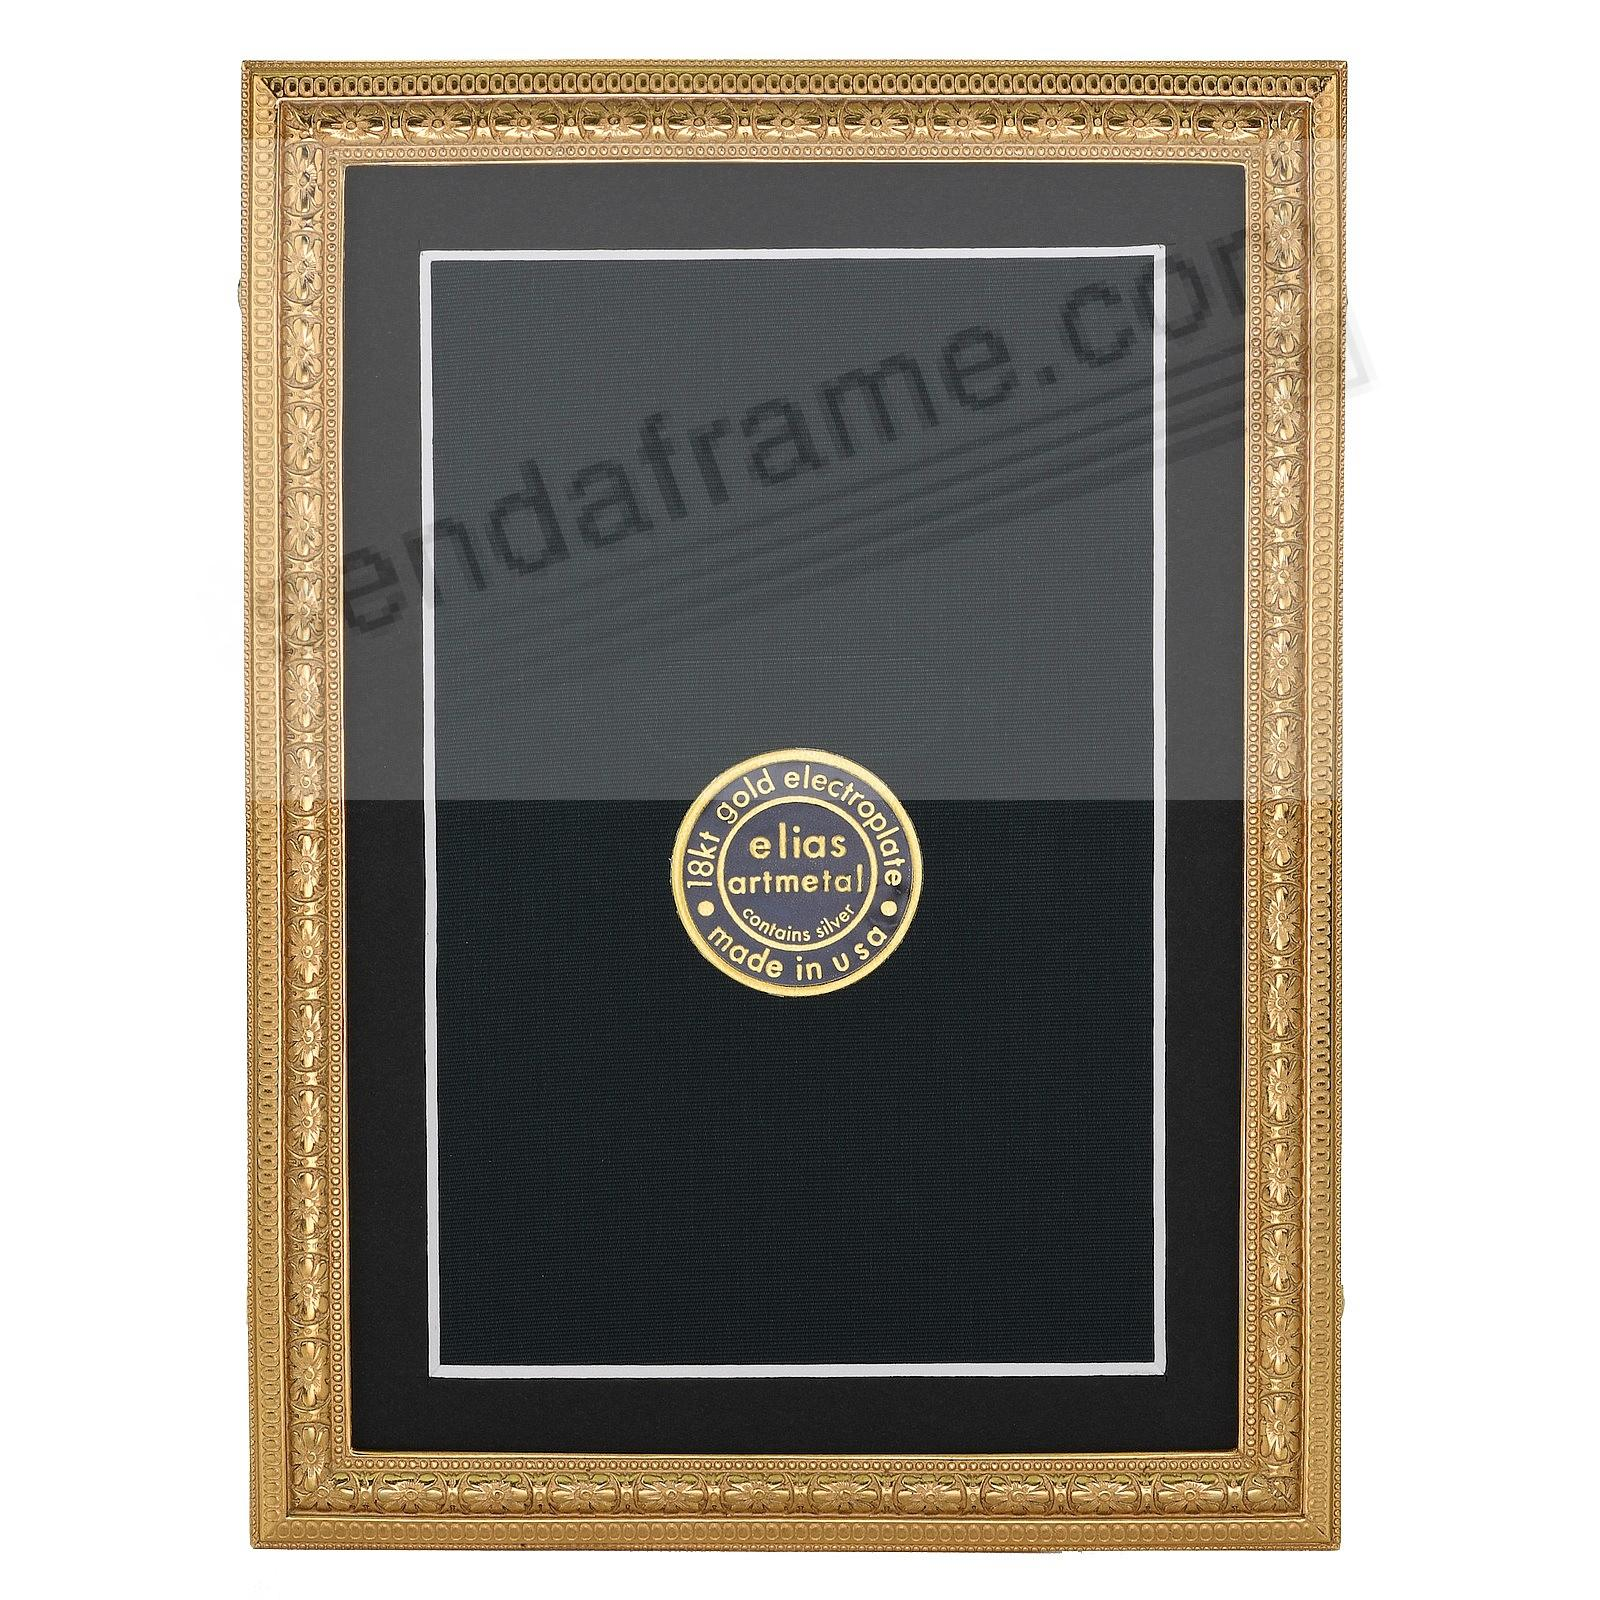 BEADED FLORAL 18kt Museum Gold Vermeil over fine Pewter 4x6/3&frac12;x5&frac12; frame<br>by Elias Artmetal&reg;